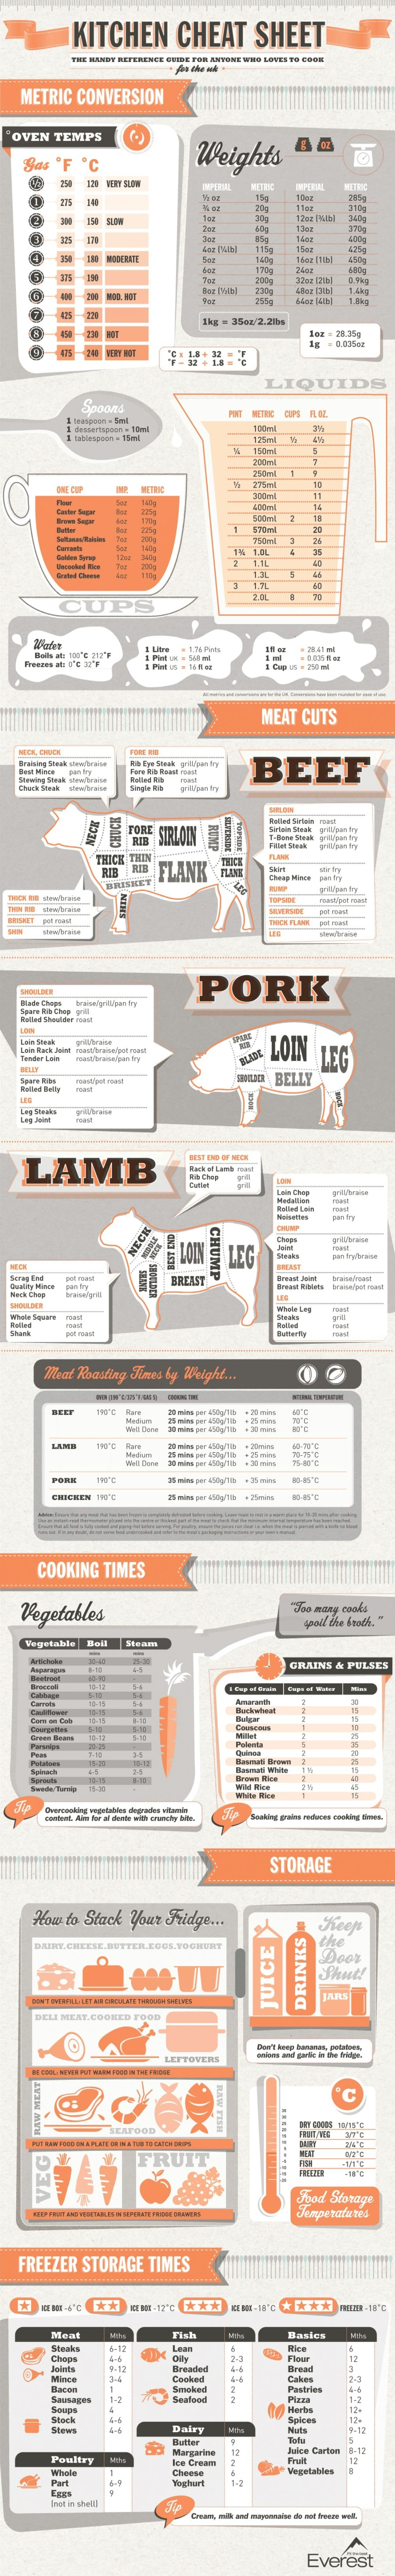 The Great Kitchen Cheat Sheet